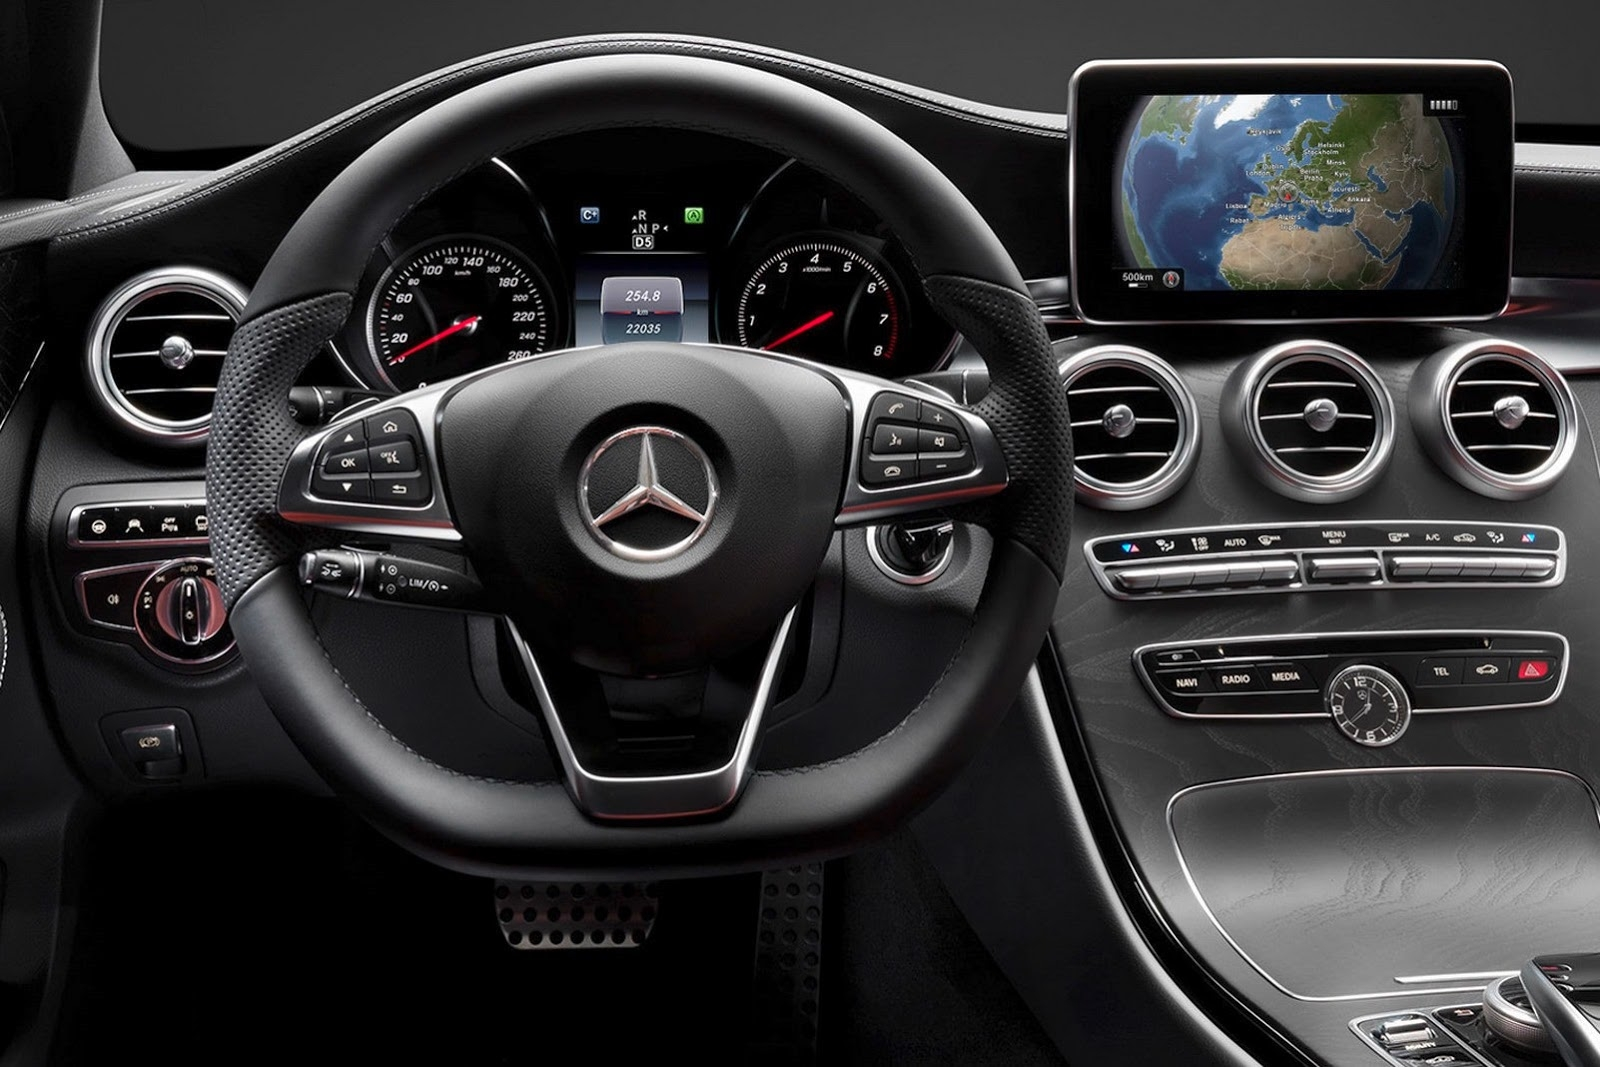 Mercedes Benz C Class 2017 Interior Dashboard